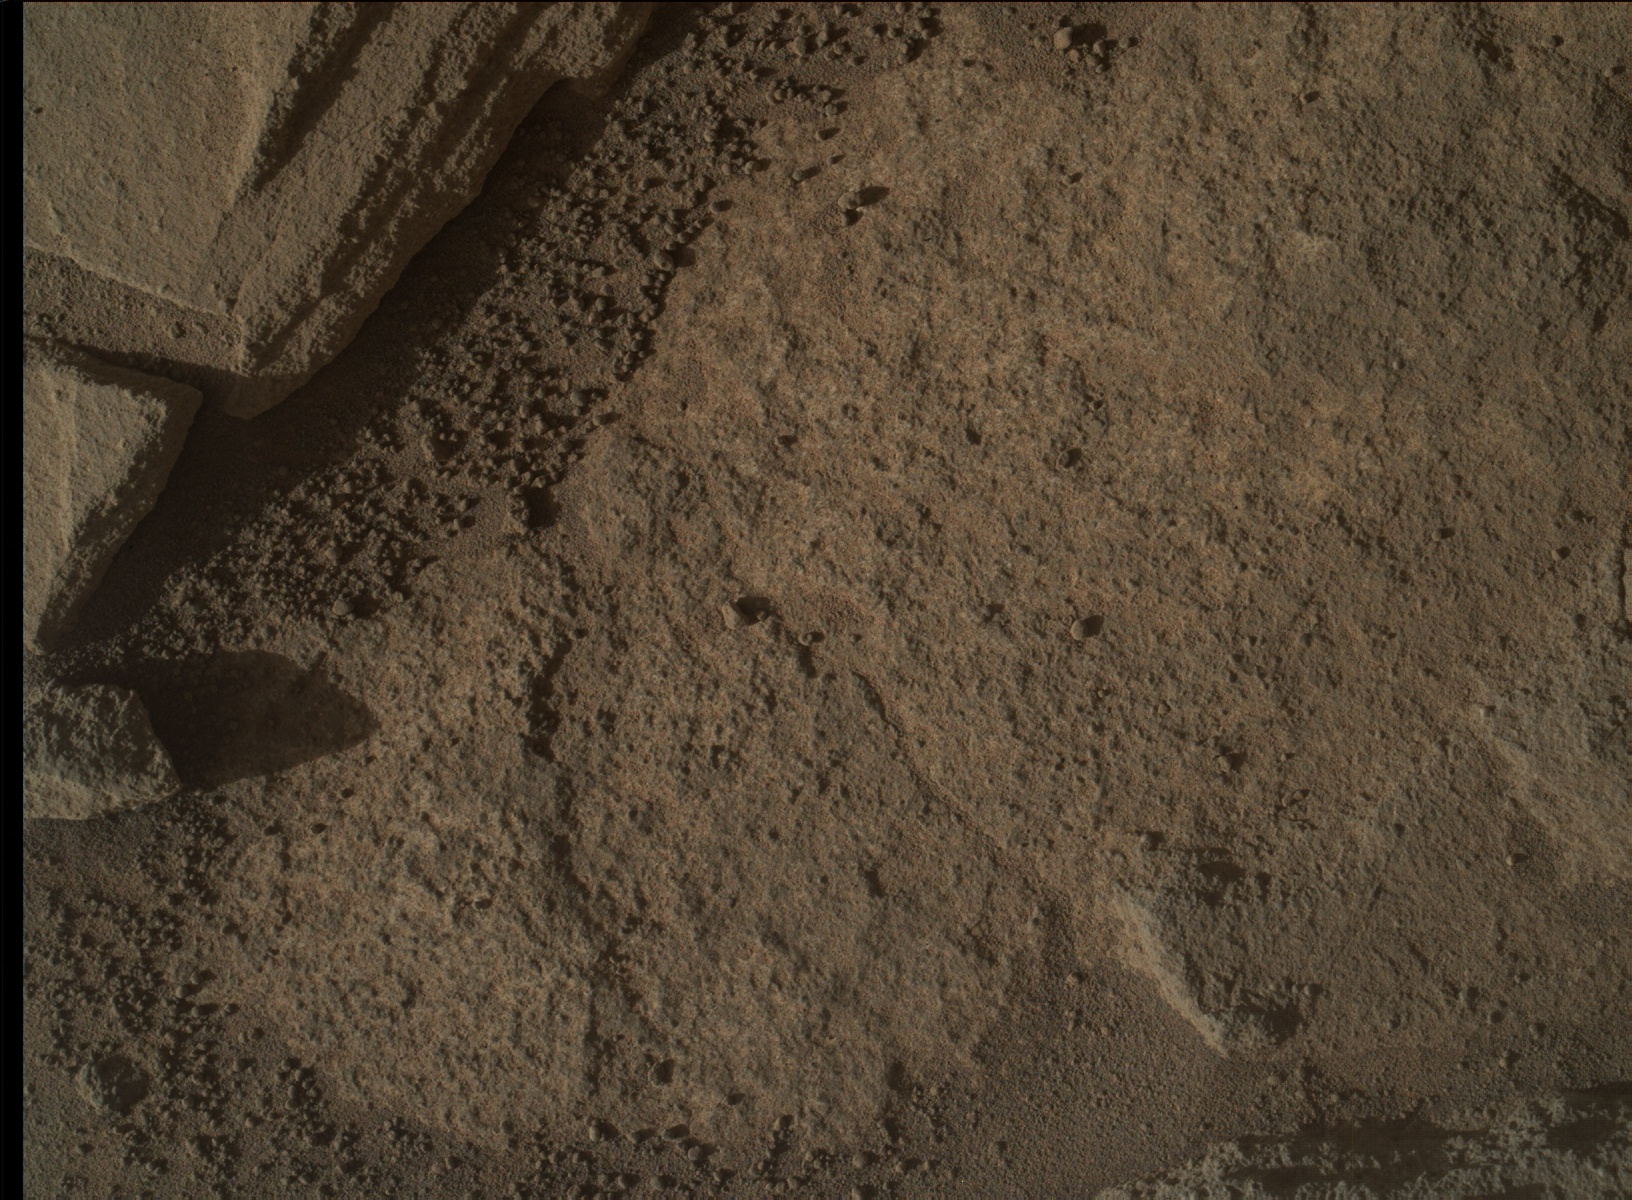 Nasa's Mars rover Curiosity acquired this image using its Mars Hand Lens Imager (MAHLI) on Sol 1287